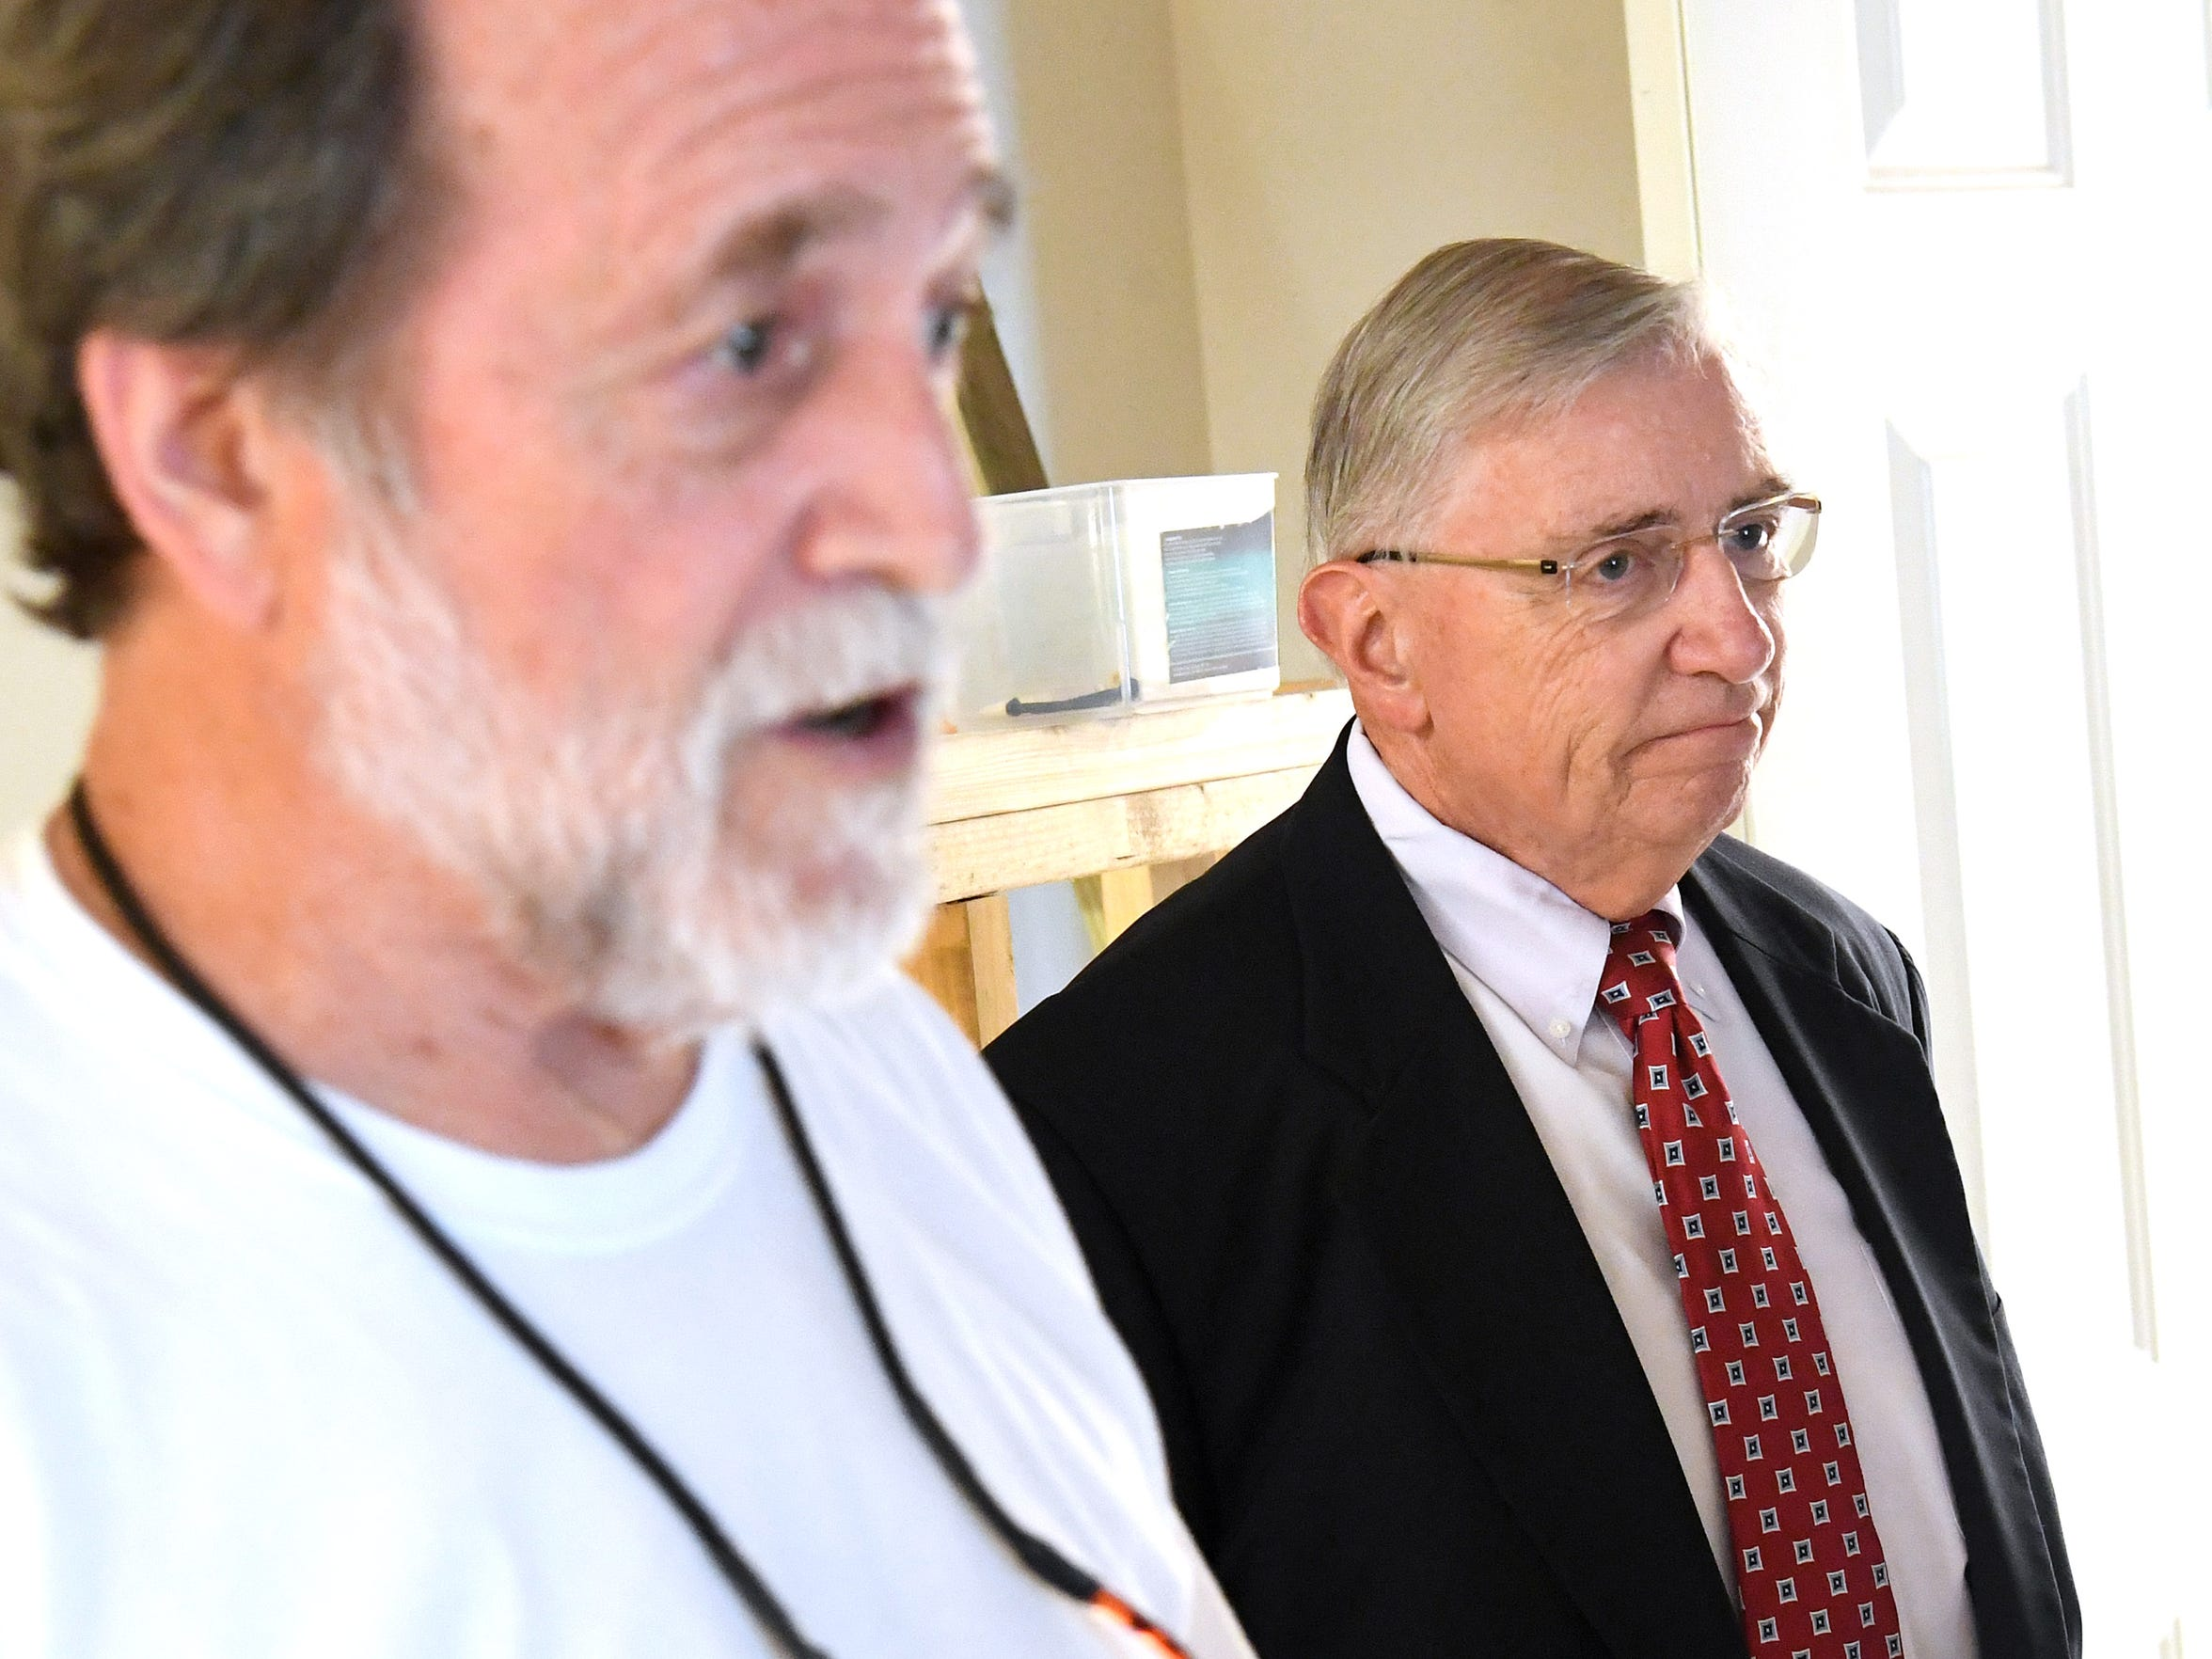 David Deering (right), executive director of Valley Community Services Board, listens as Clark Banta (left), executive director of Valley Supportive Housing, talks about the new apartments being added to Johnson Street Apartments during an interview in Staunton on Friday, August 3, 2018.